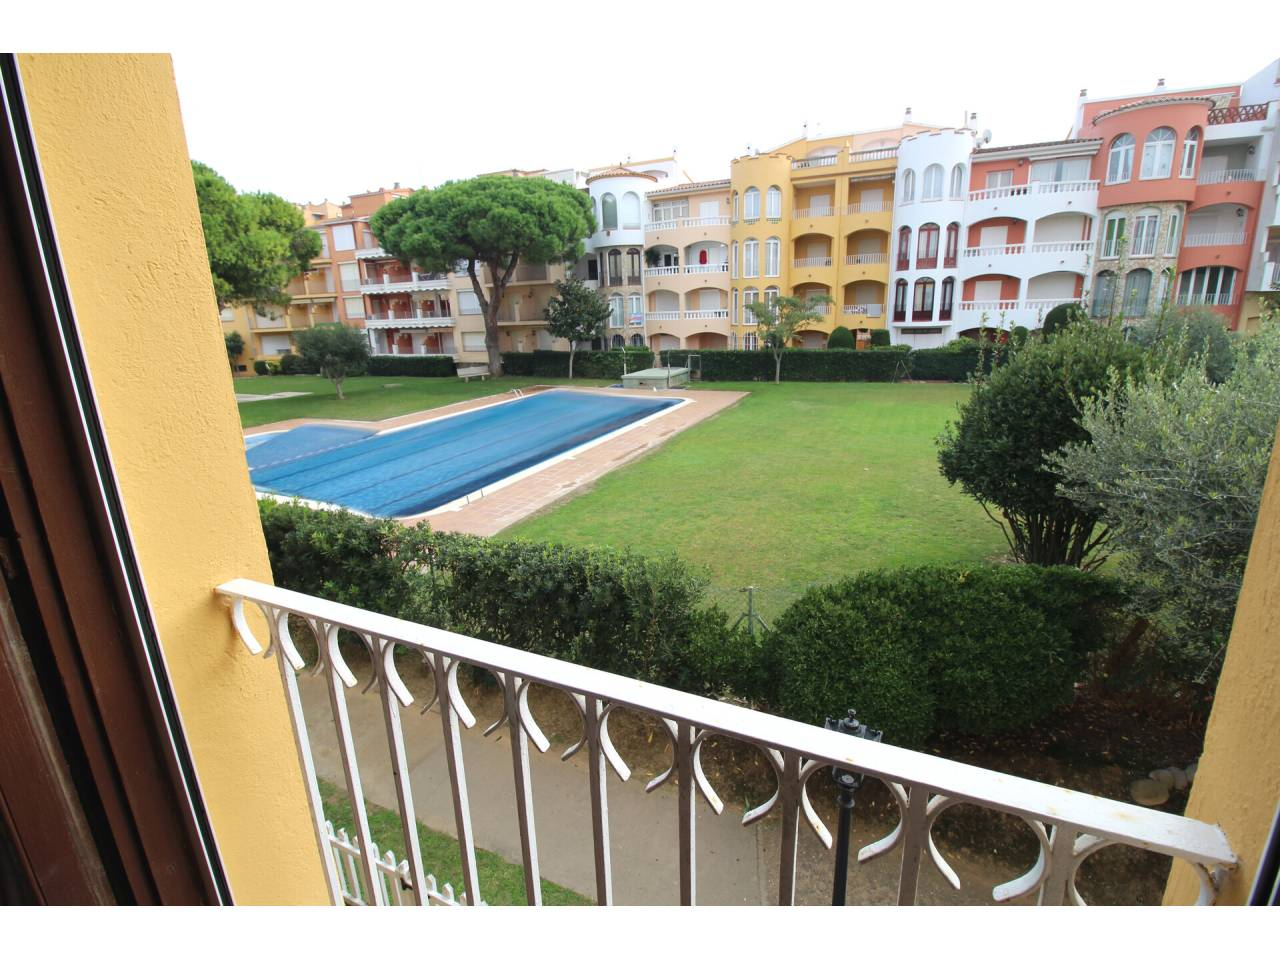 000007 - GRAN RESERVA  Apartment with community pool and gardens